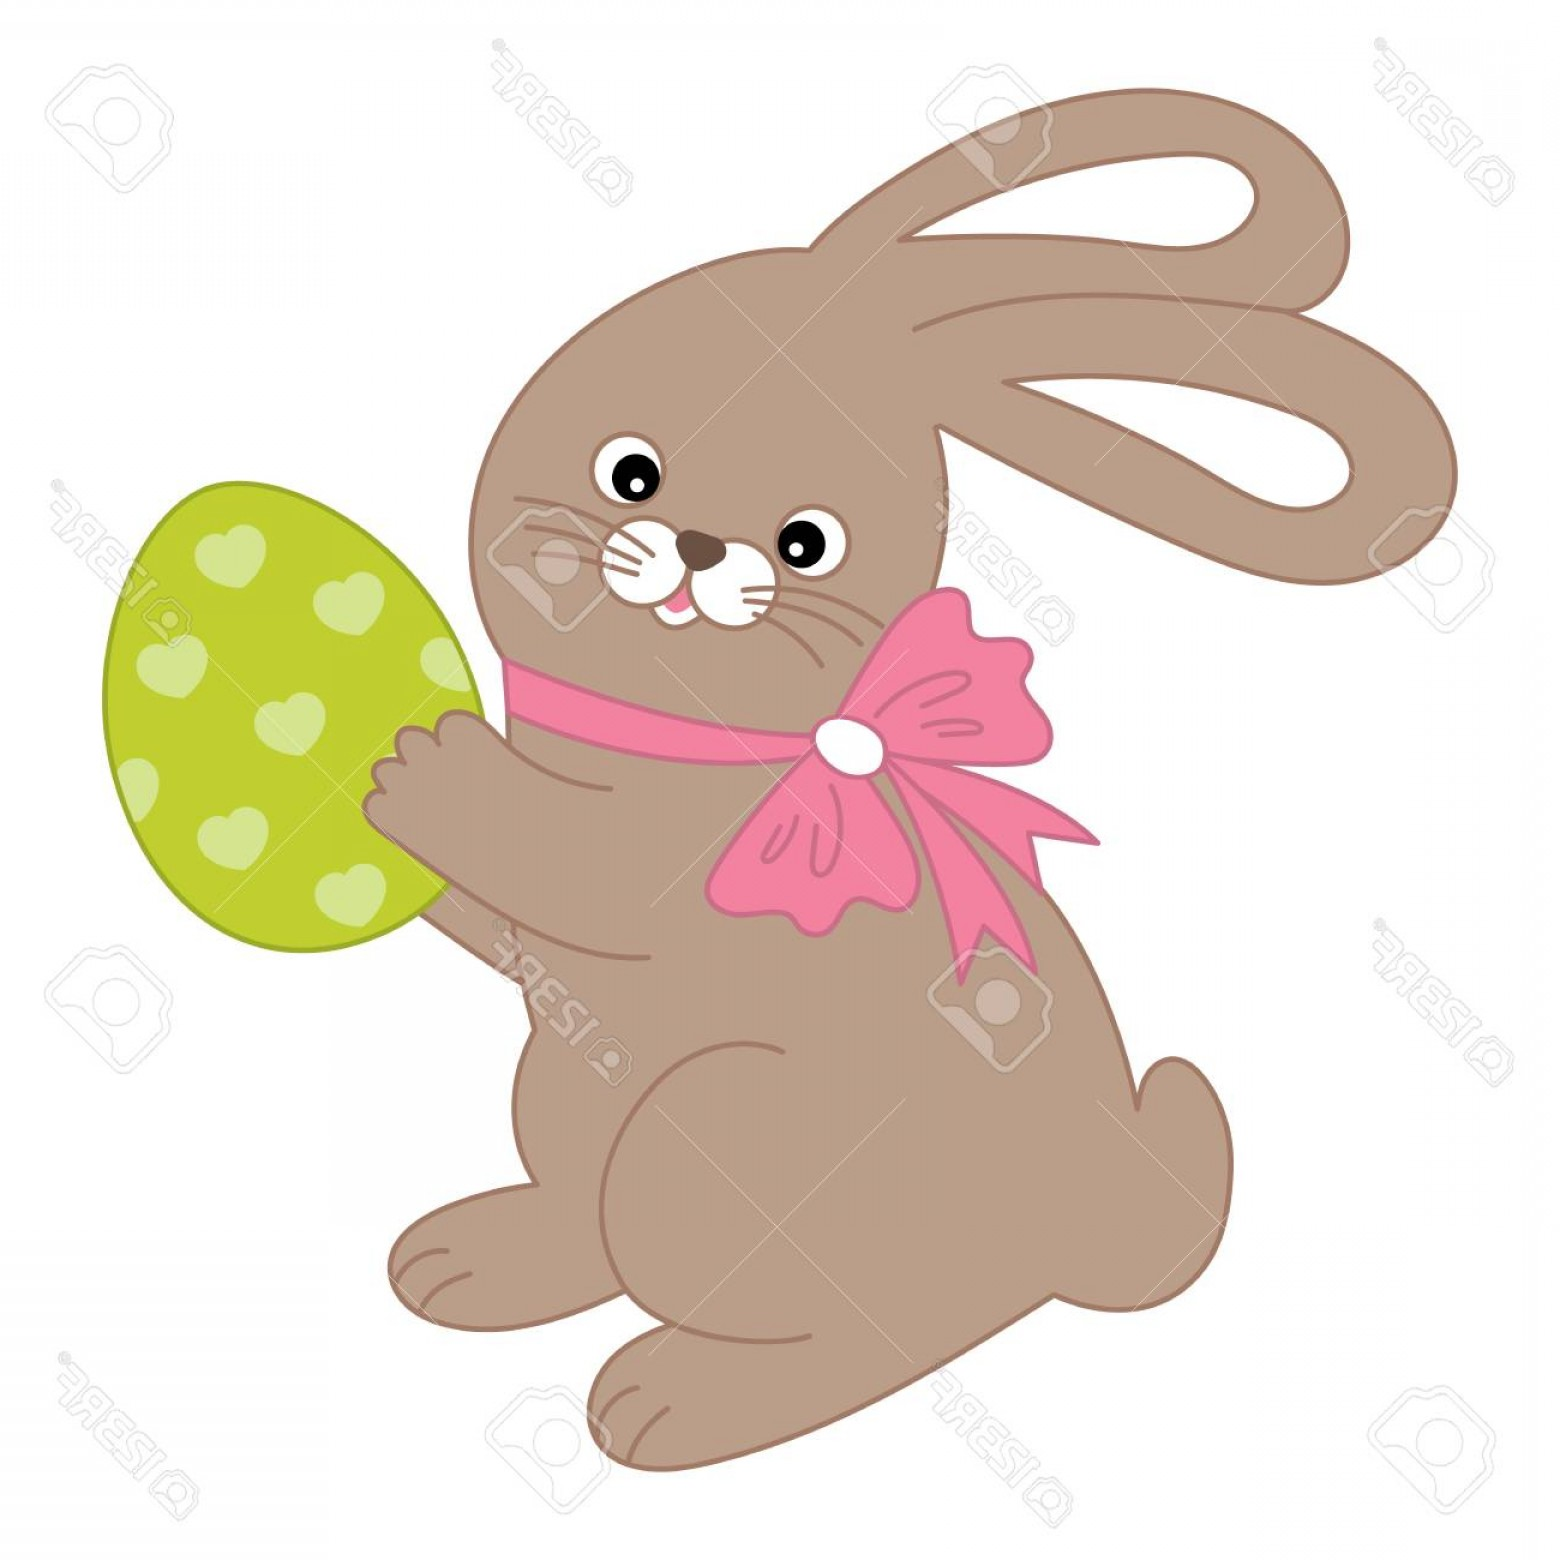 Image Vector Clip Art Bunny Bunny: Photostock Vector A Vector Cute Cartoon Easter Bunny With An Egg Vector Easter Bunny Clip Art Bunny Vector Illustratio